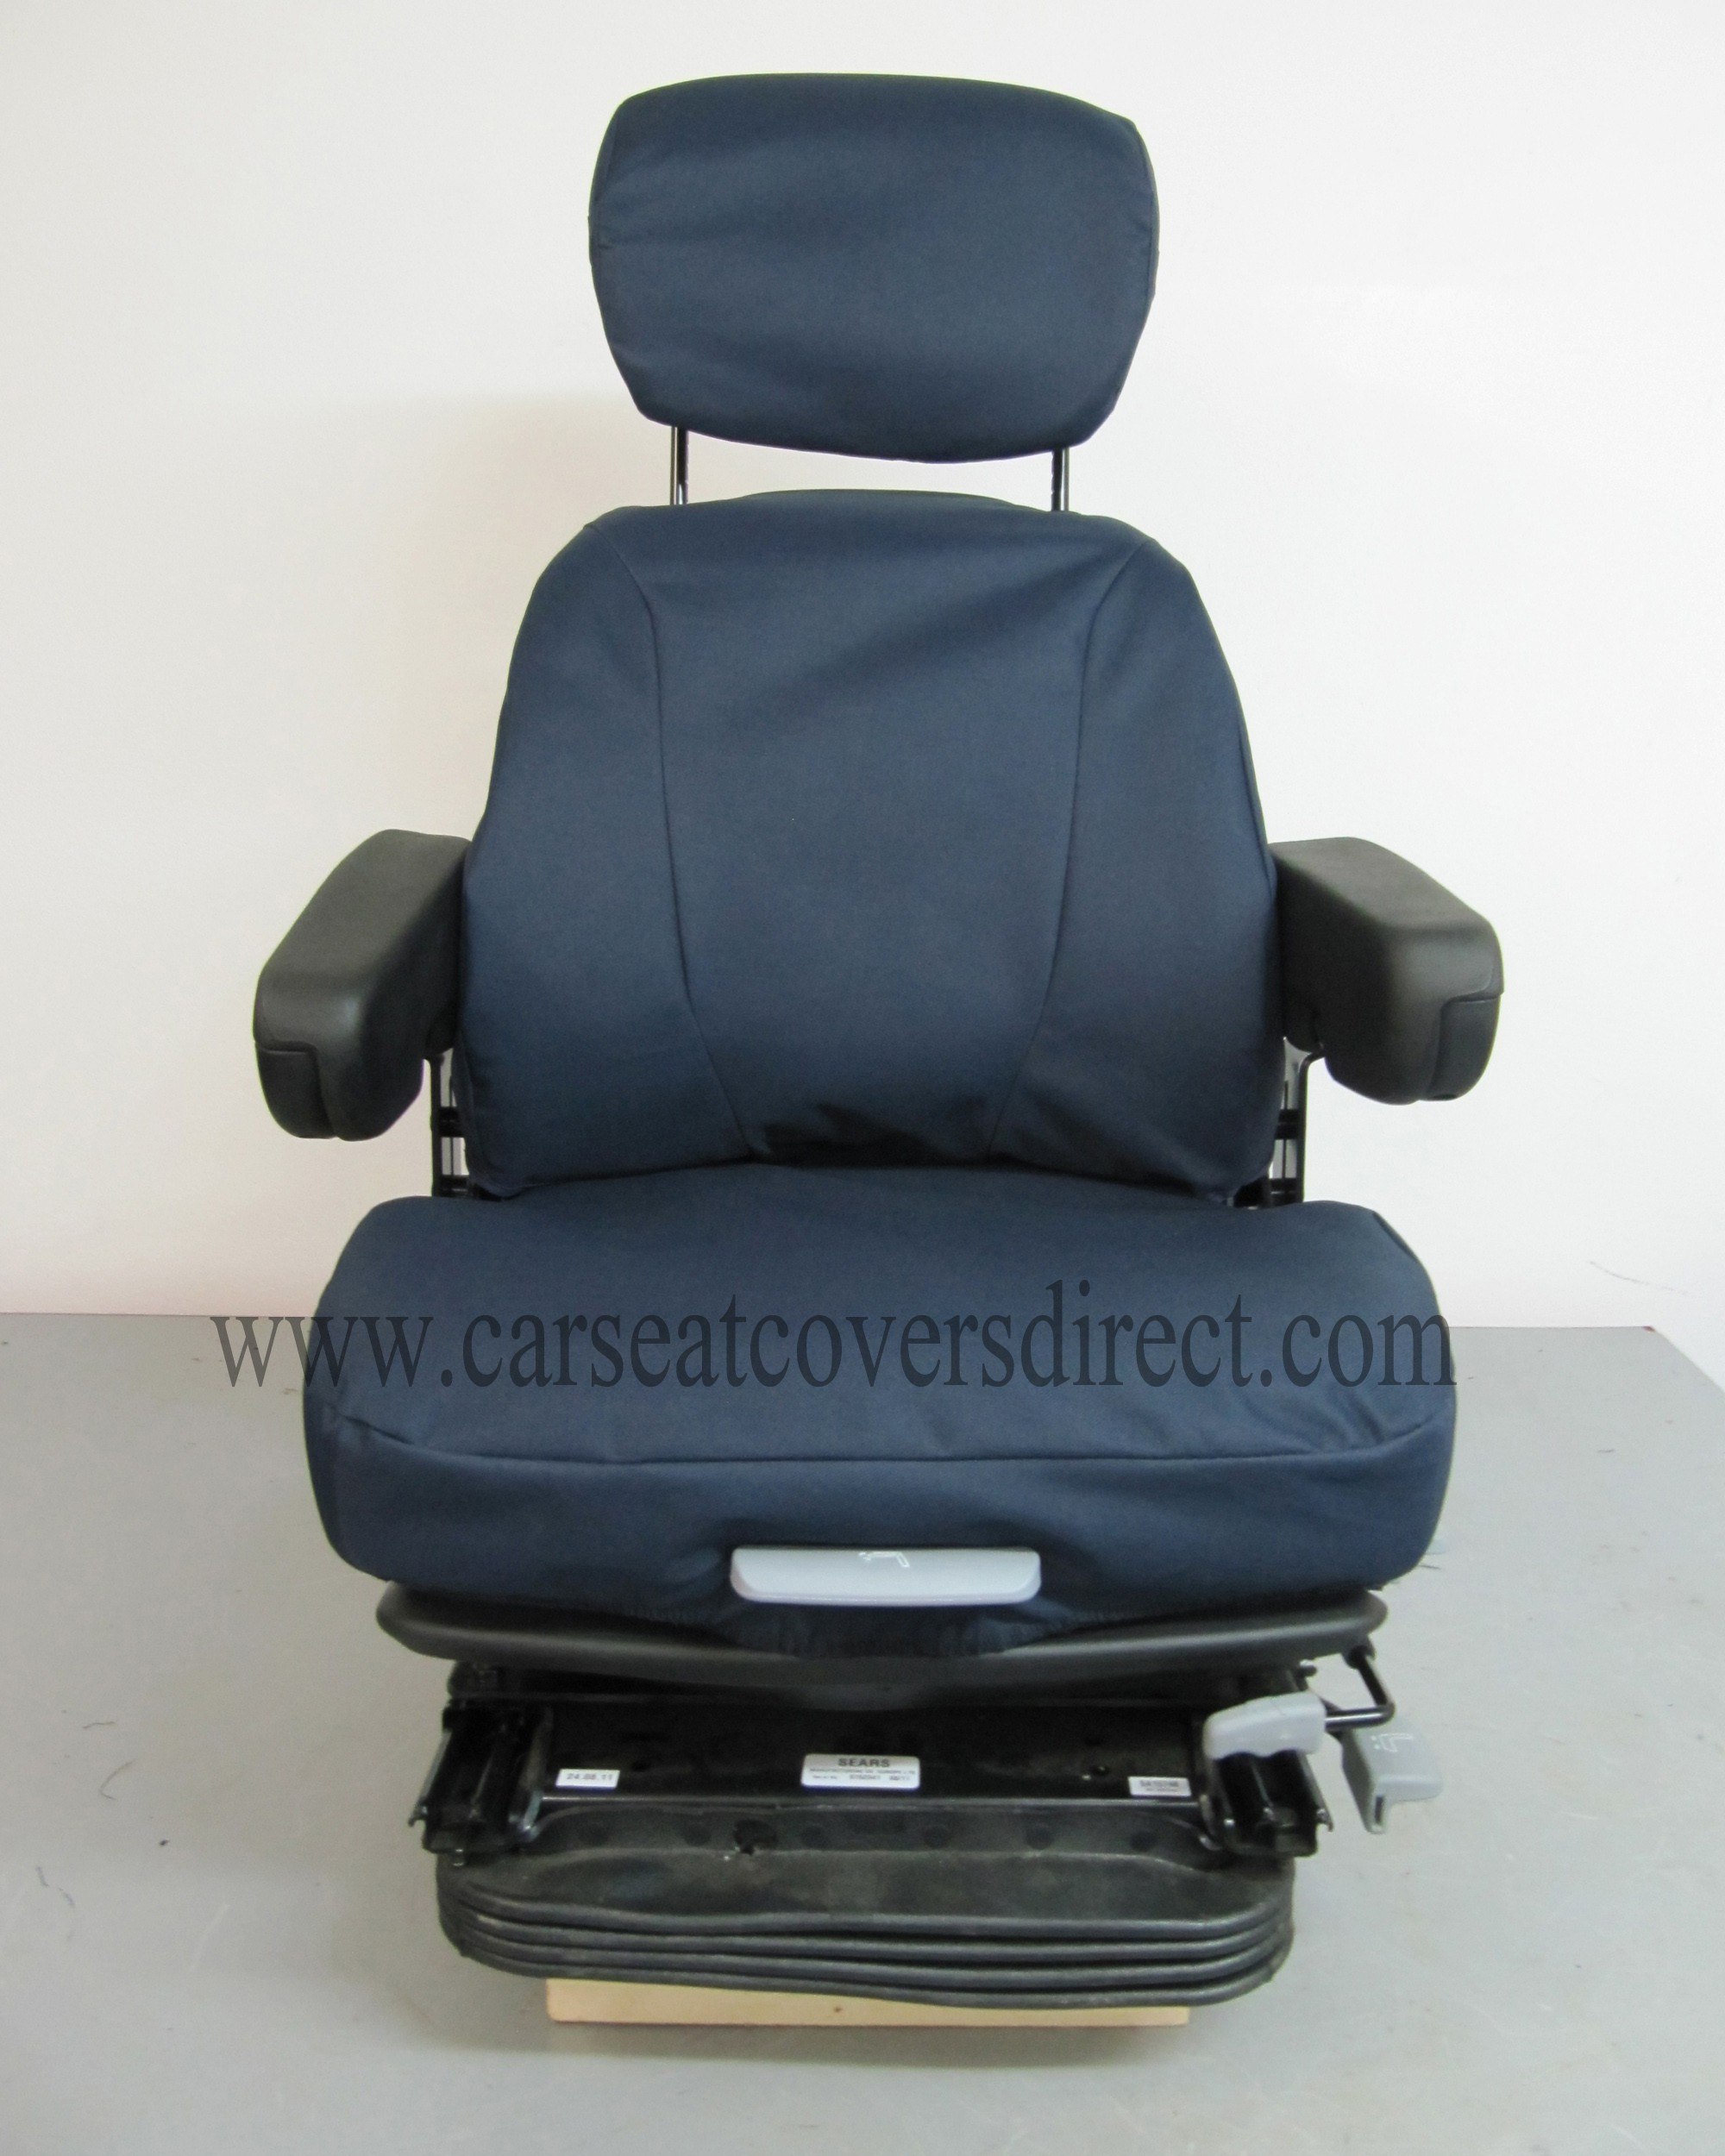 New Holland Heavy Duty Seat Covers Car Seat Covers Direct ...